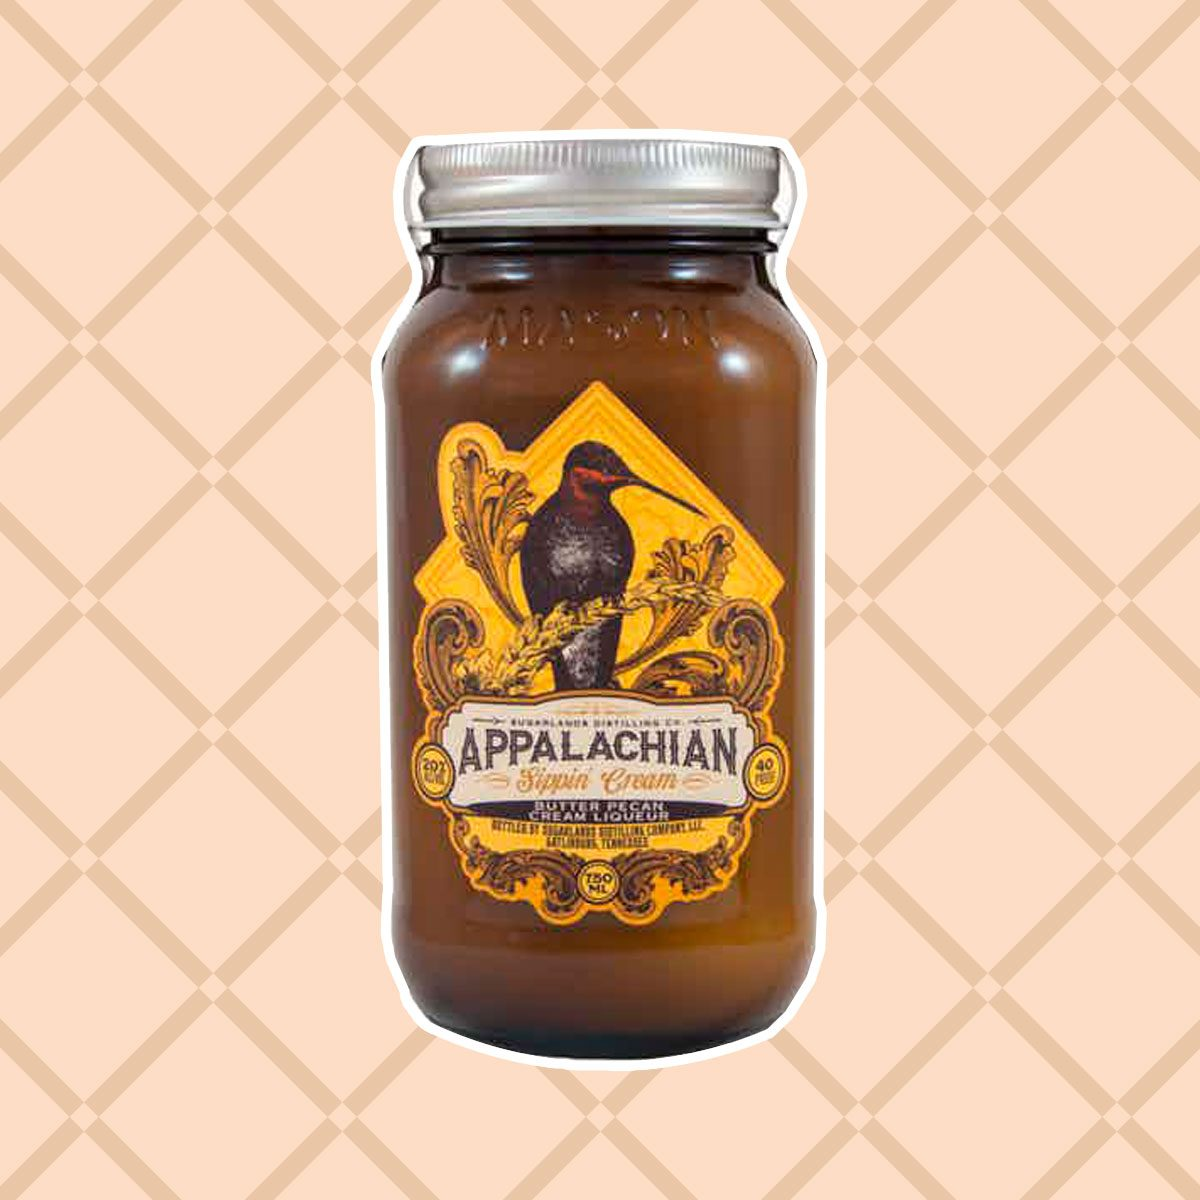 Sugarlands Appalachian Sipping Butter Pecan Cream Liqueur